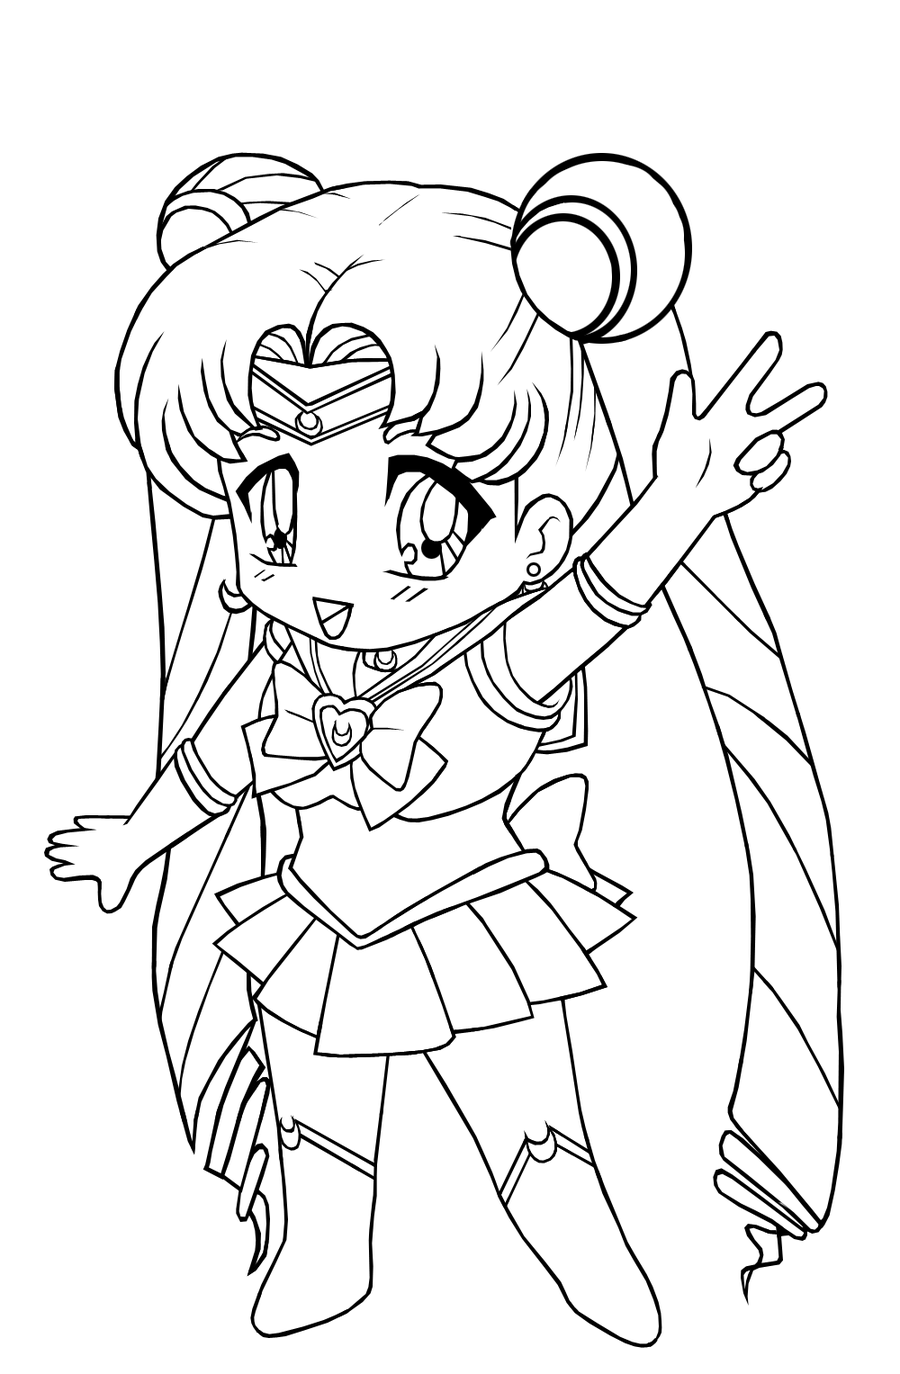 popular coloring pages free printable funny coloring pages for kids pages coloring popular